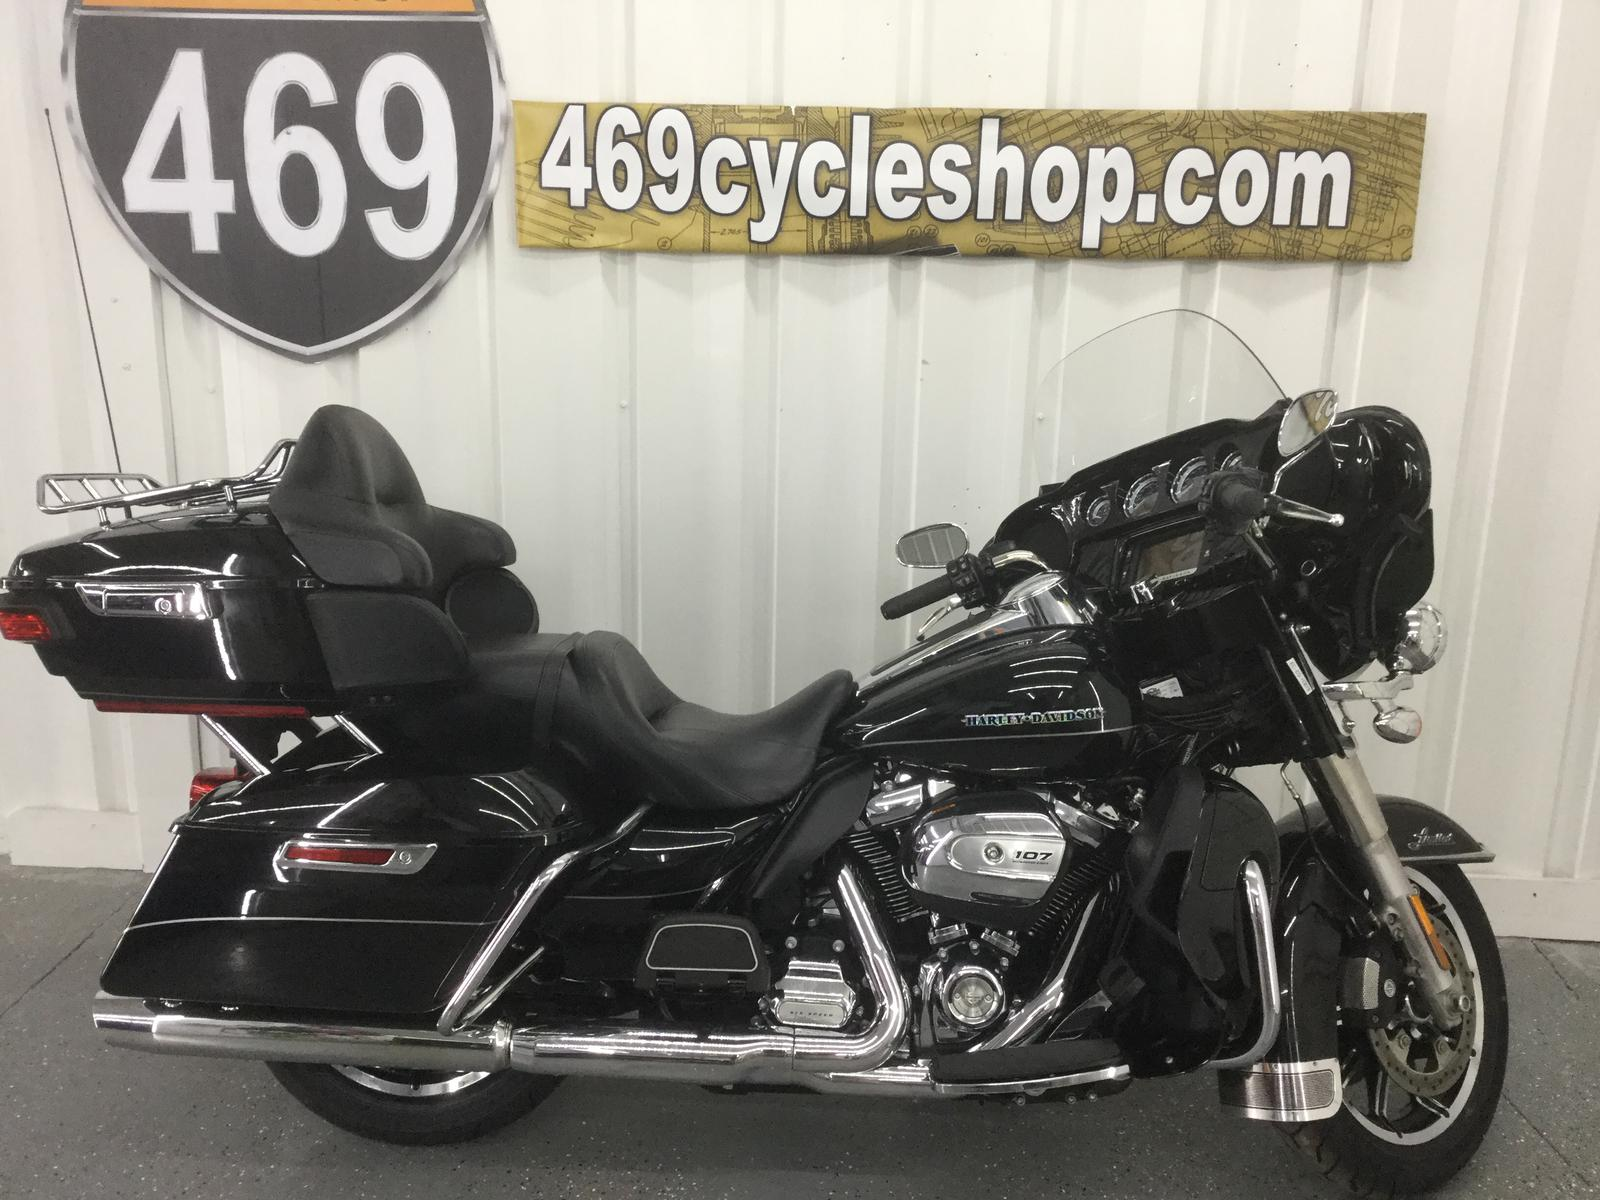 2017 Harley Davidson Flhtk Electra Glide Ultra Limited For Sale In New Haven 469 Cycle Shop 260 749 0469